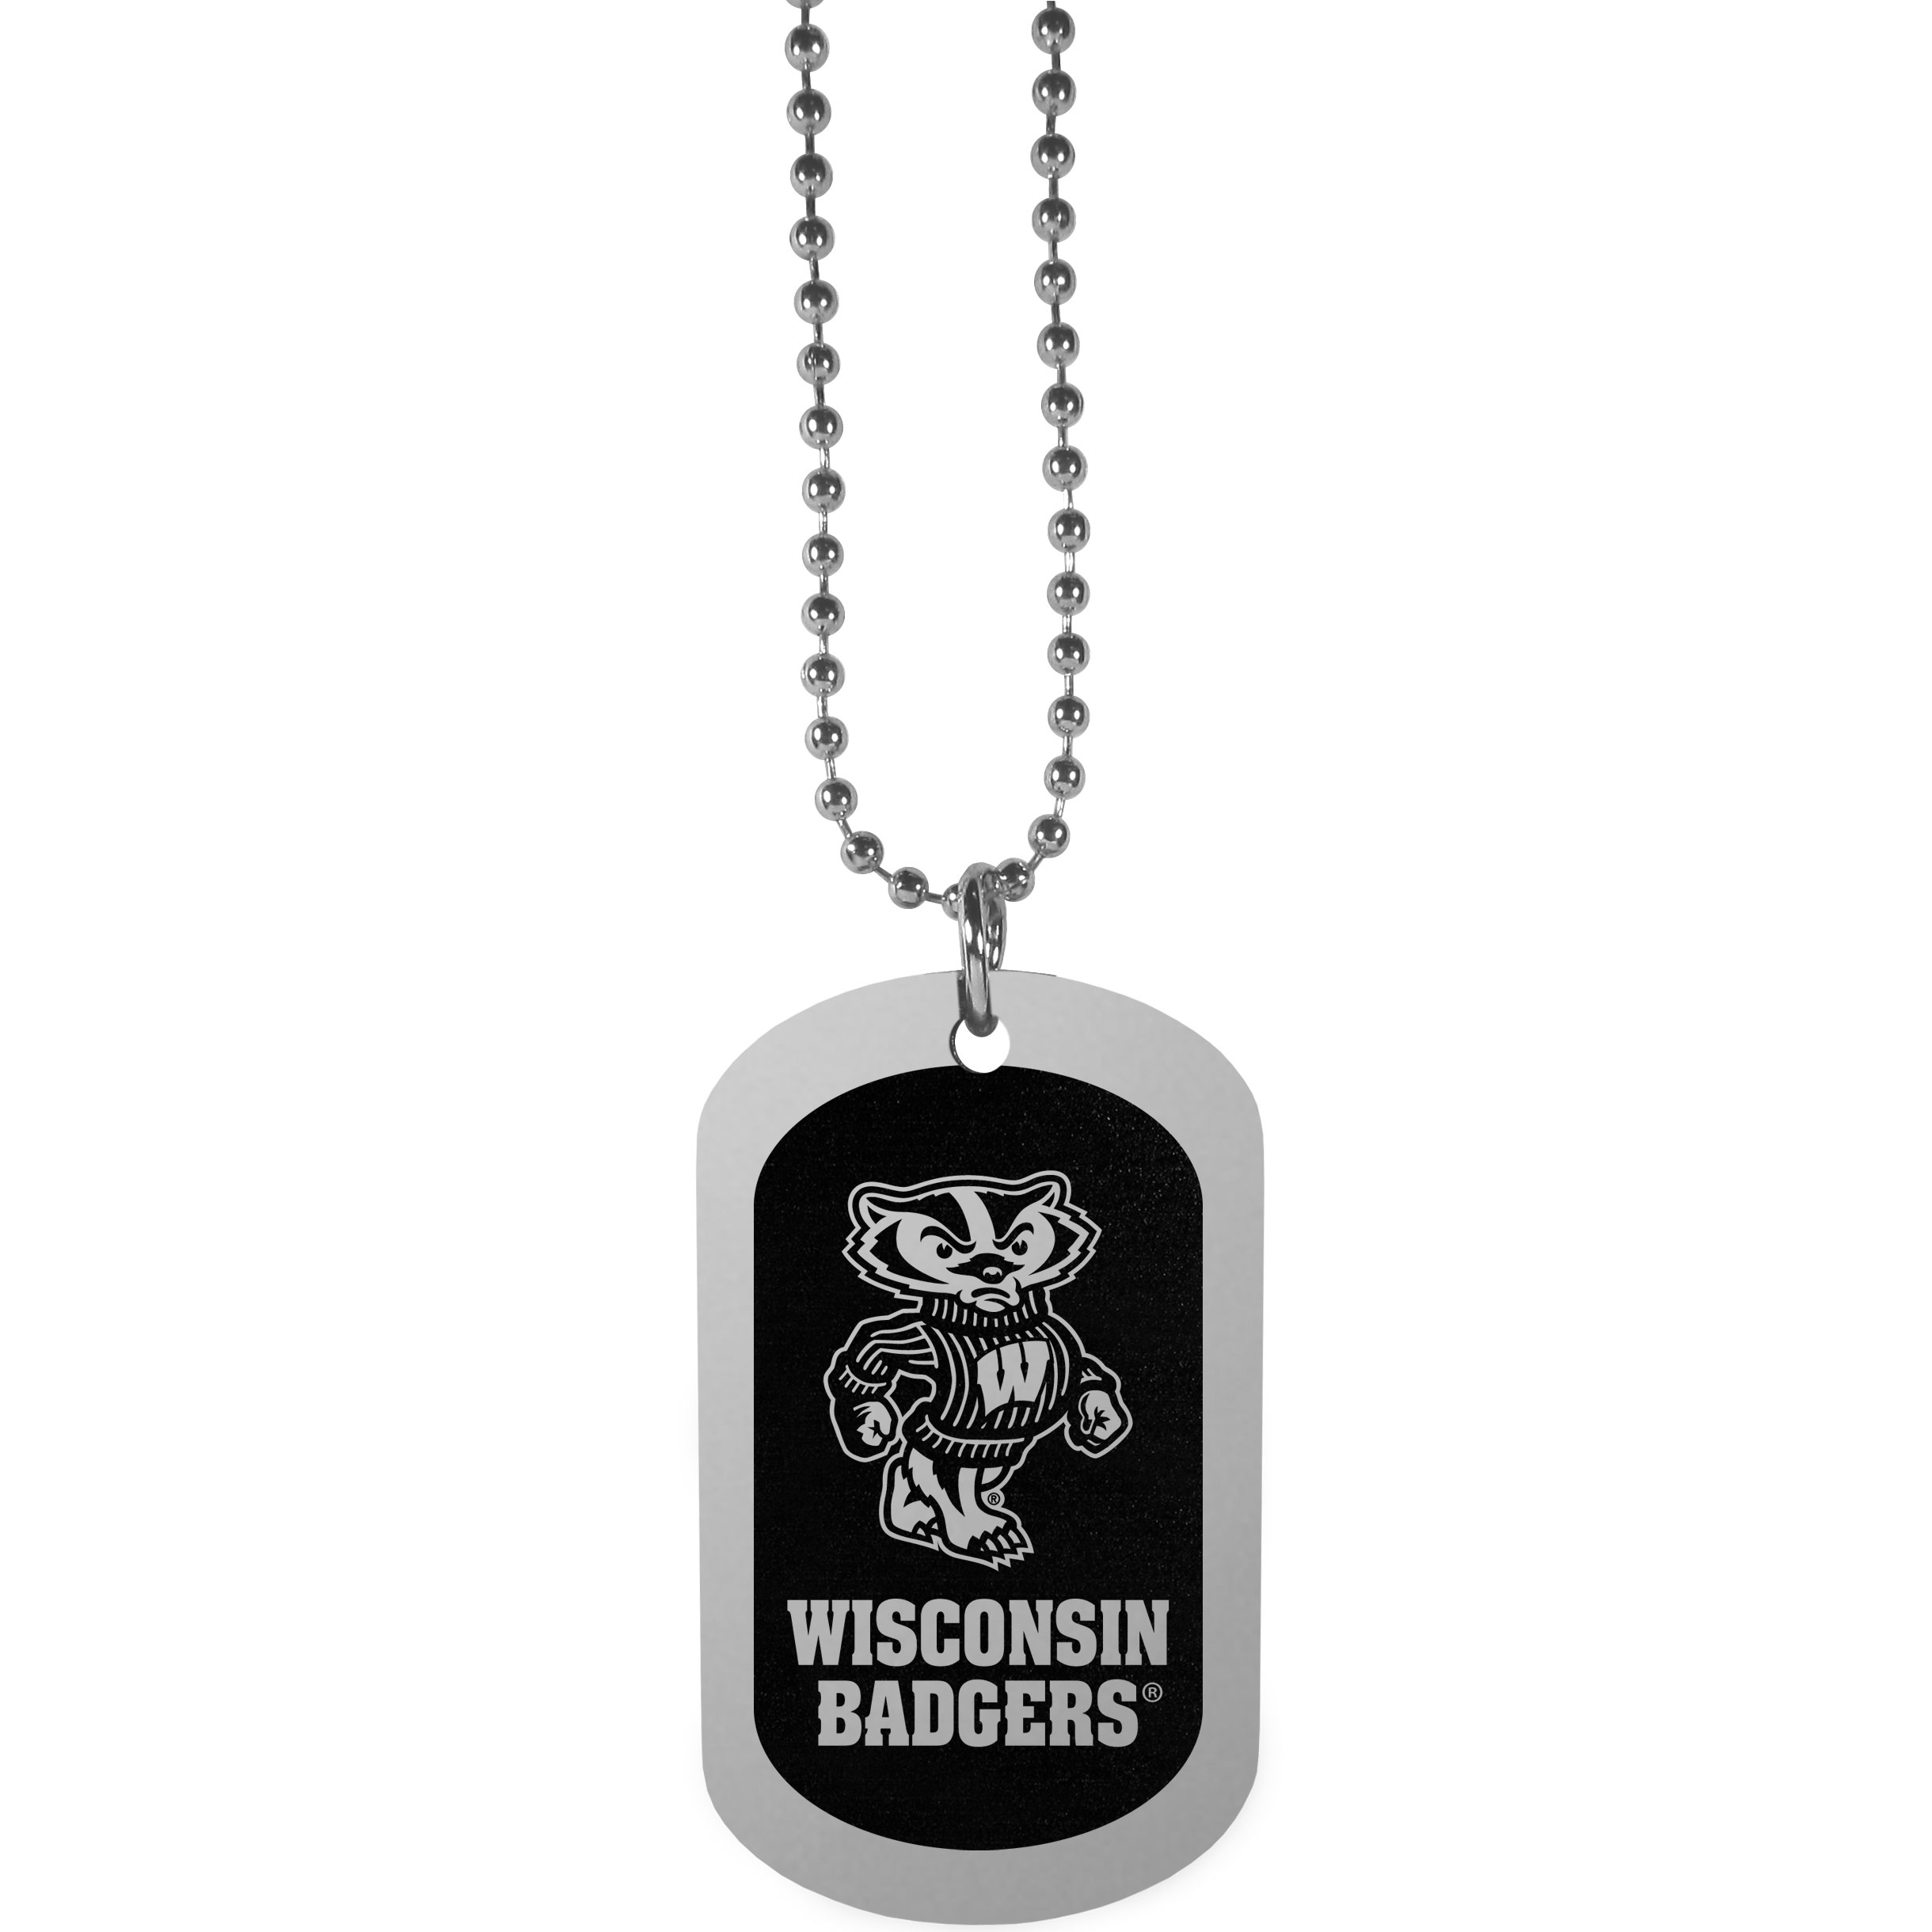 Wisconsin Badgers Chrome Tag Necklace - Dog tag necklaces are a fashion statement that is here to stay. The sporty version of the classic tag features a black printed over a high polish tag to create a bold and sporty look. The tag comes on a 26 inch ball chain with a ball and joint clasp. Any Wisconsin Badgers would be proud to wear this attractive fashion accessory.